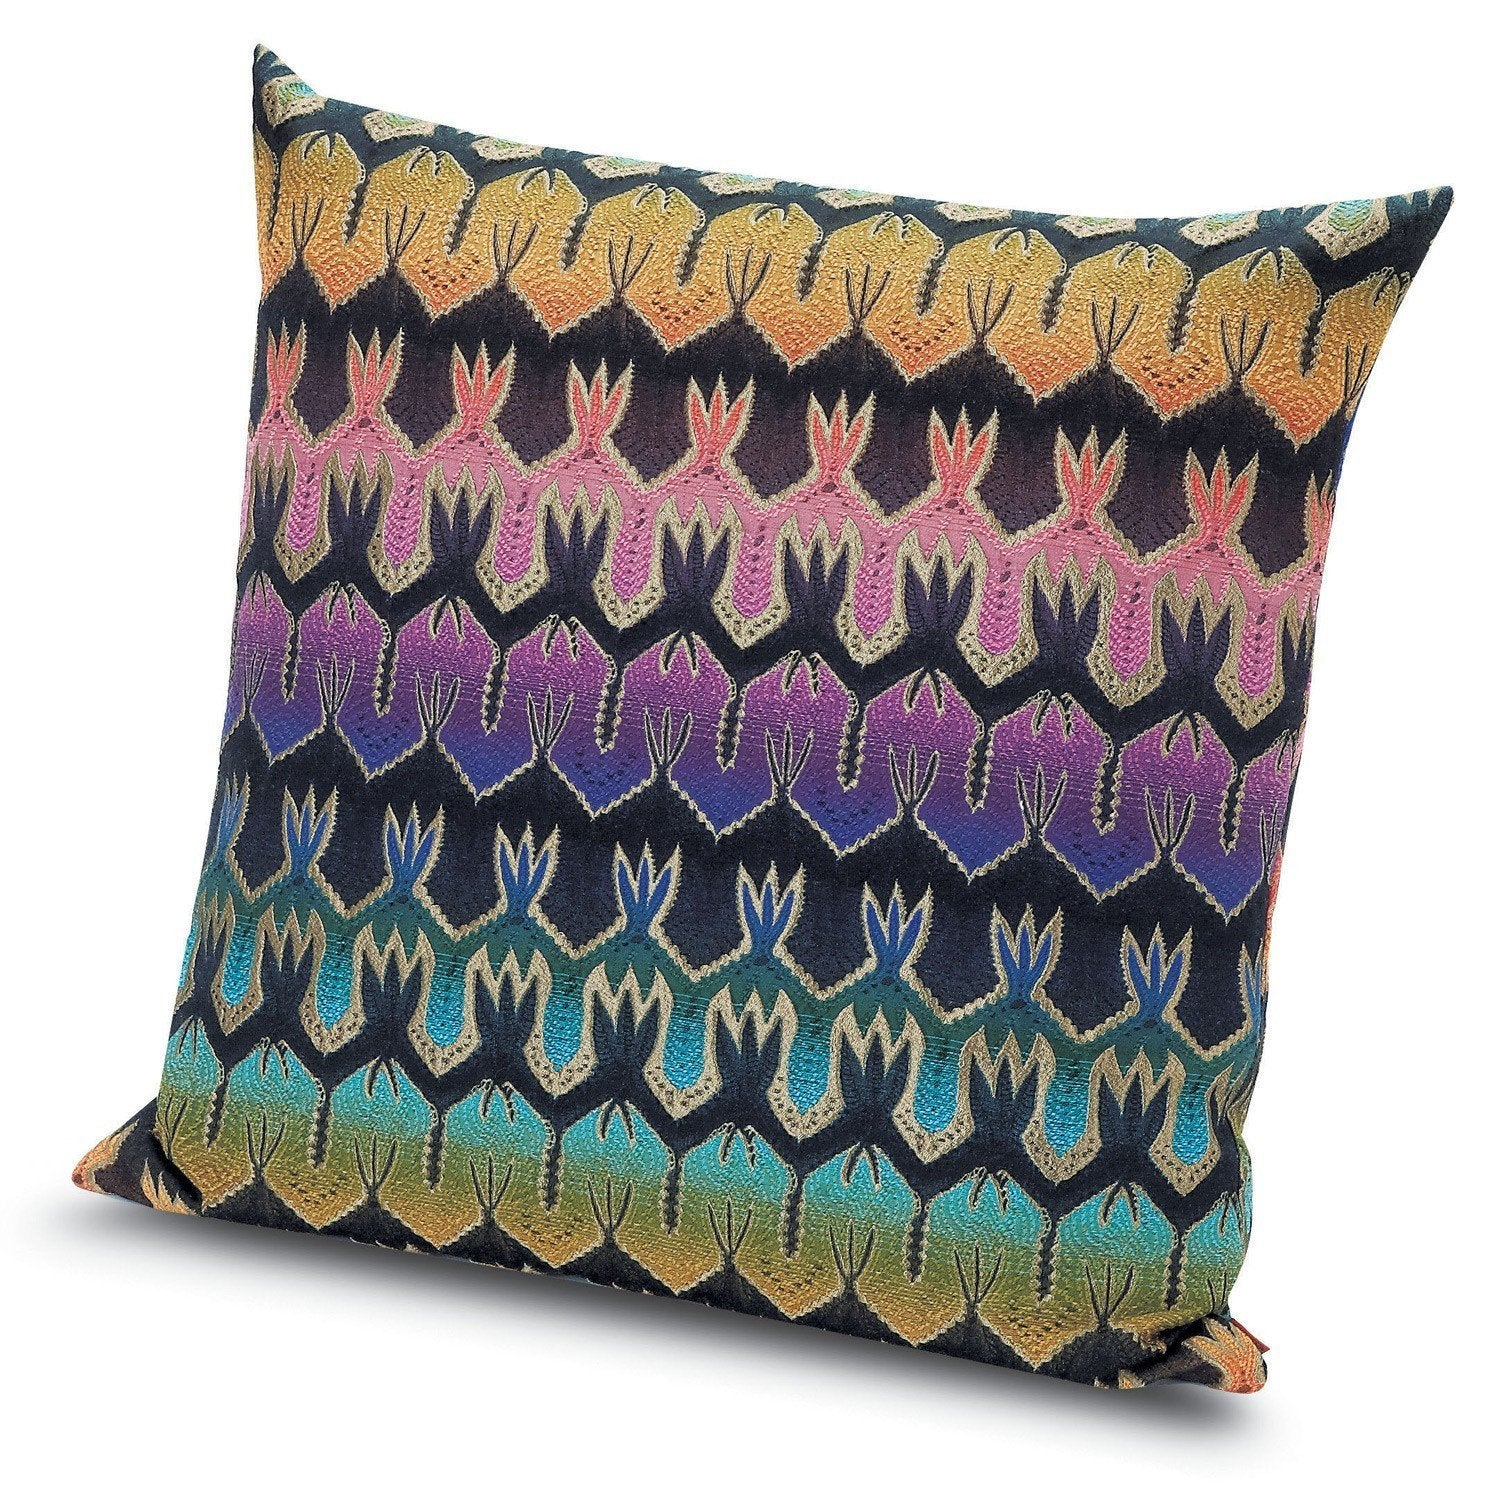 "Roing cushion 24"" x 24"""